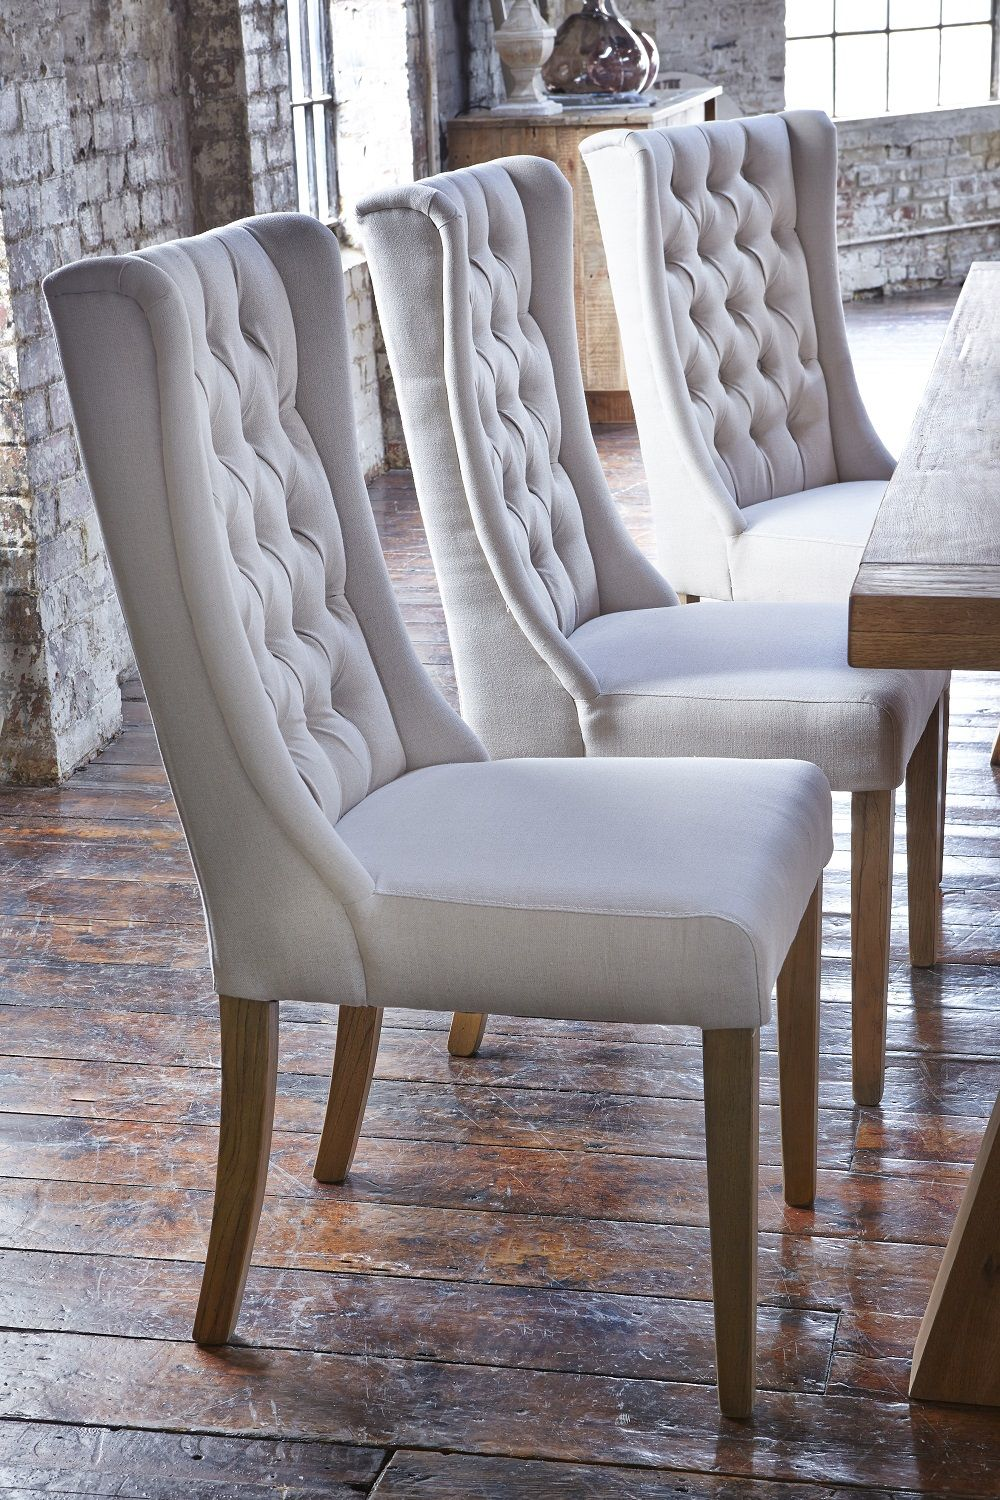 Upholstered, Winged Chairs Will Give Your Dining Room An Air Of Elegance.  We Love